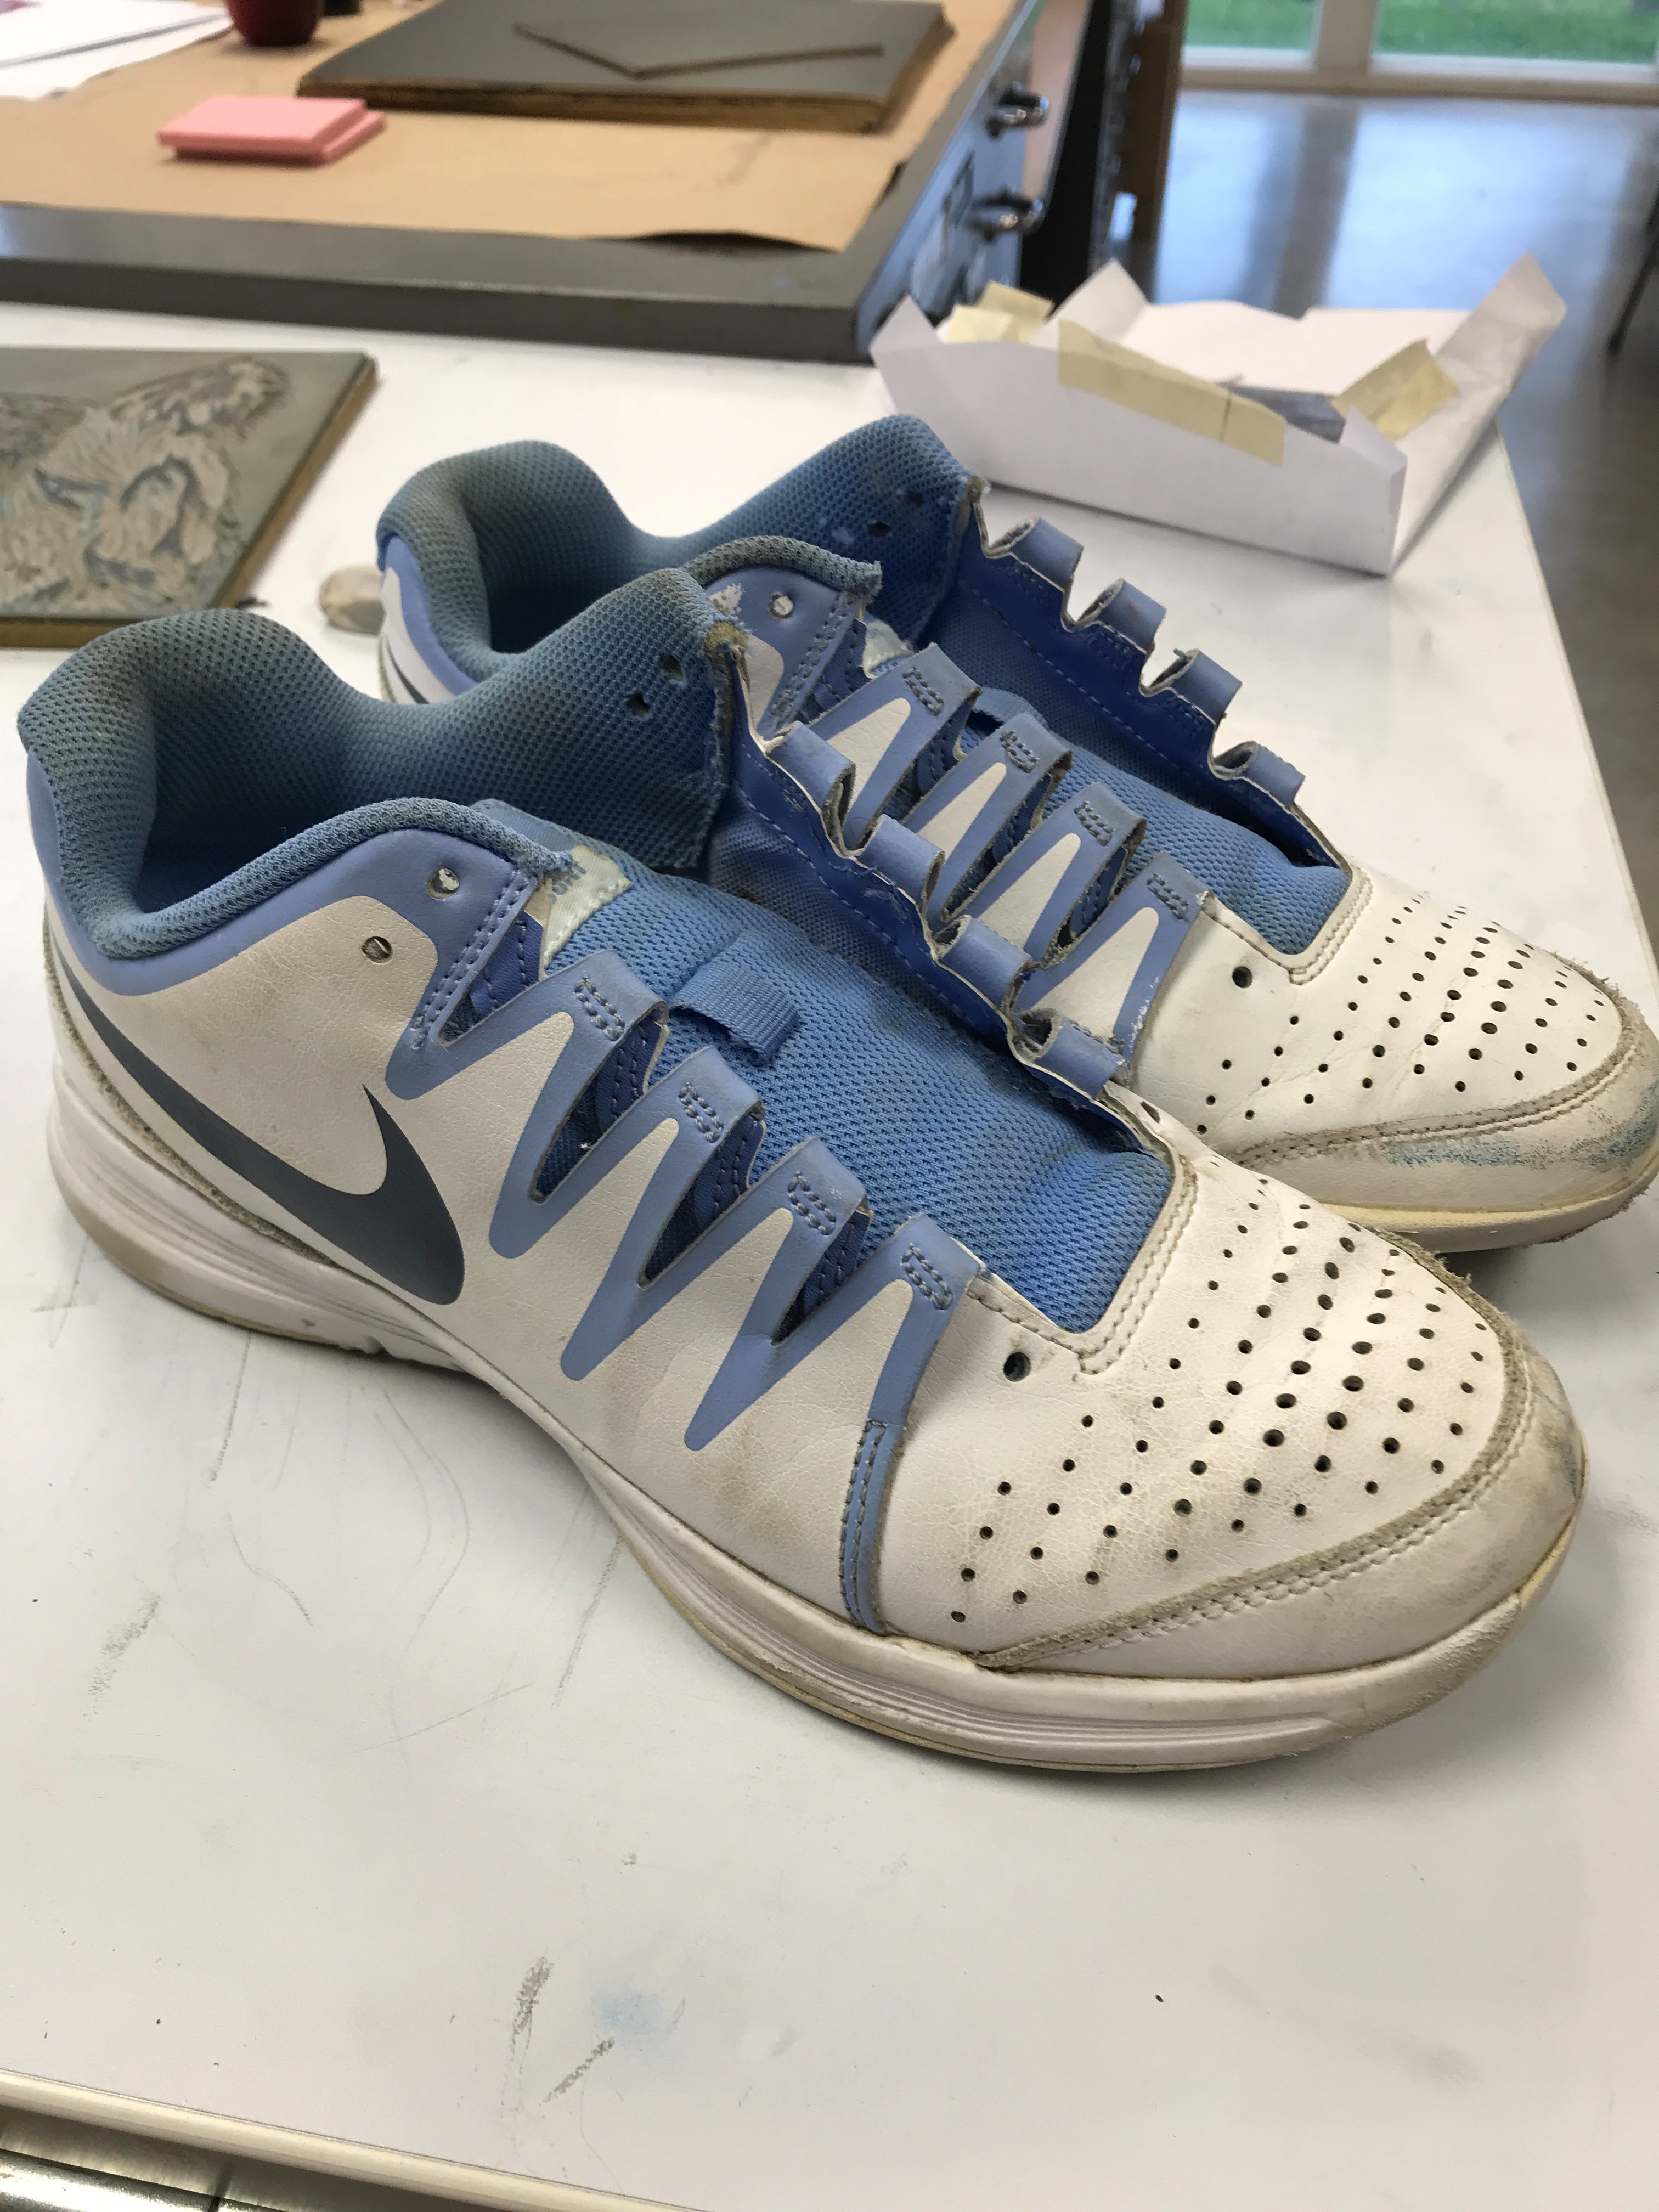 Picture of Find an Old Pair of Shoes